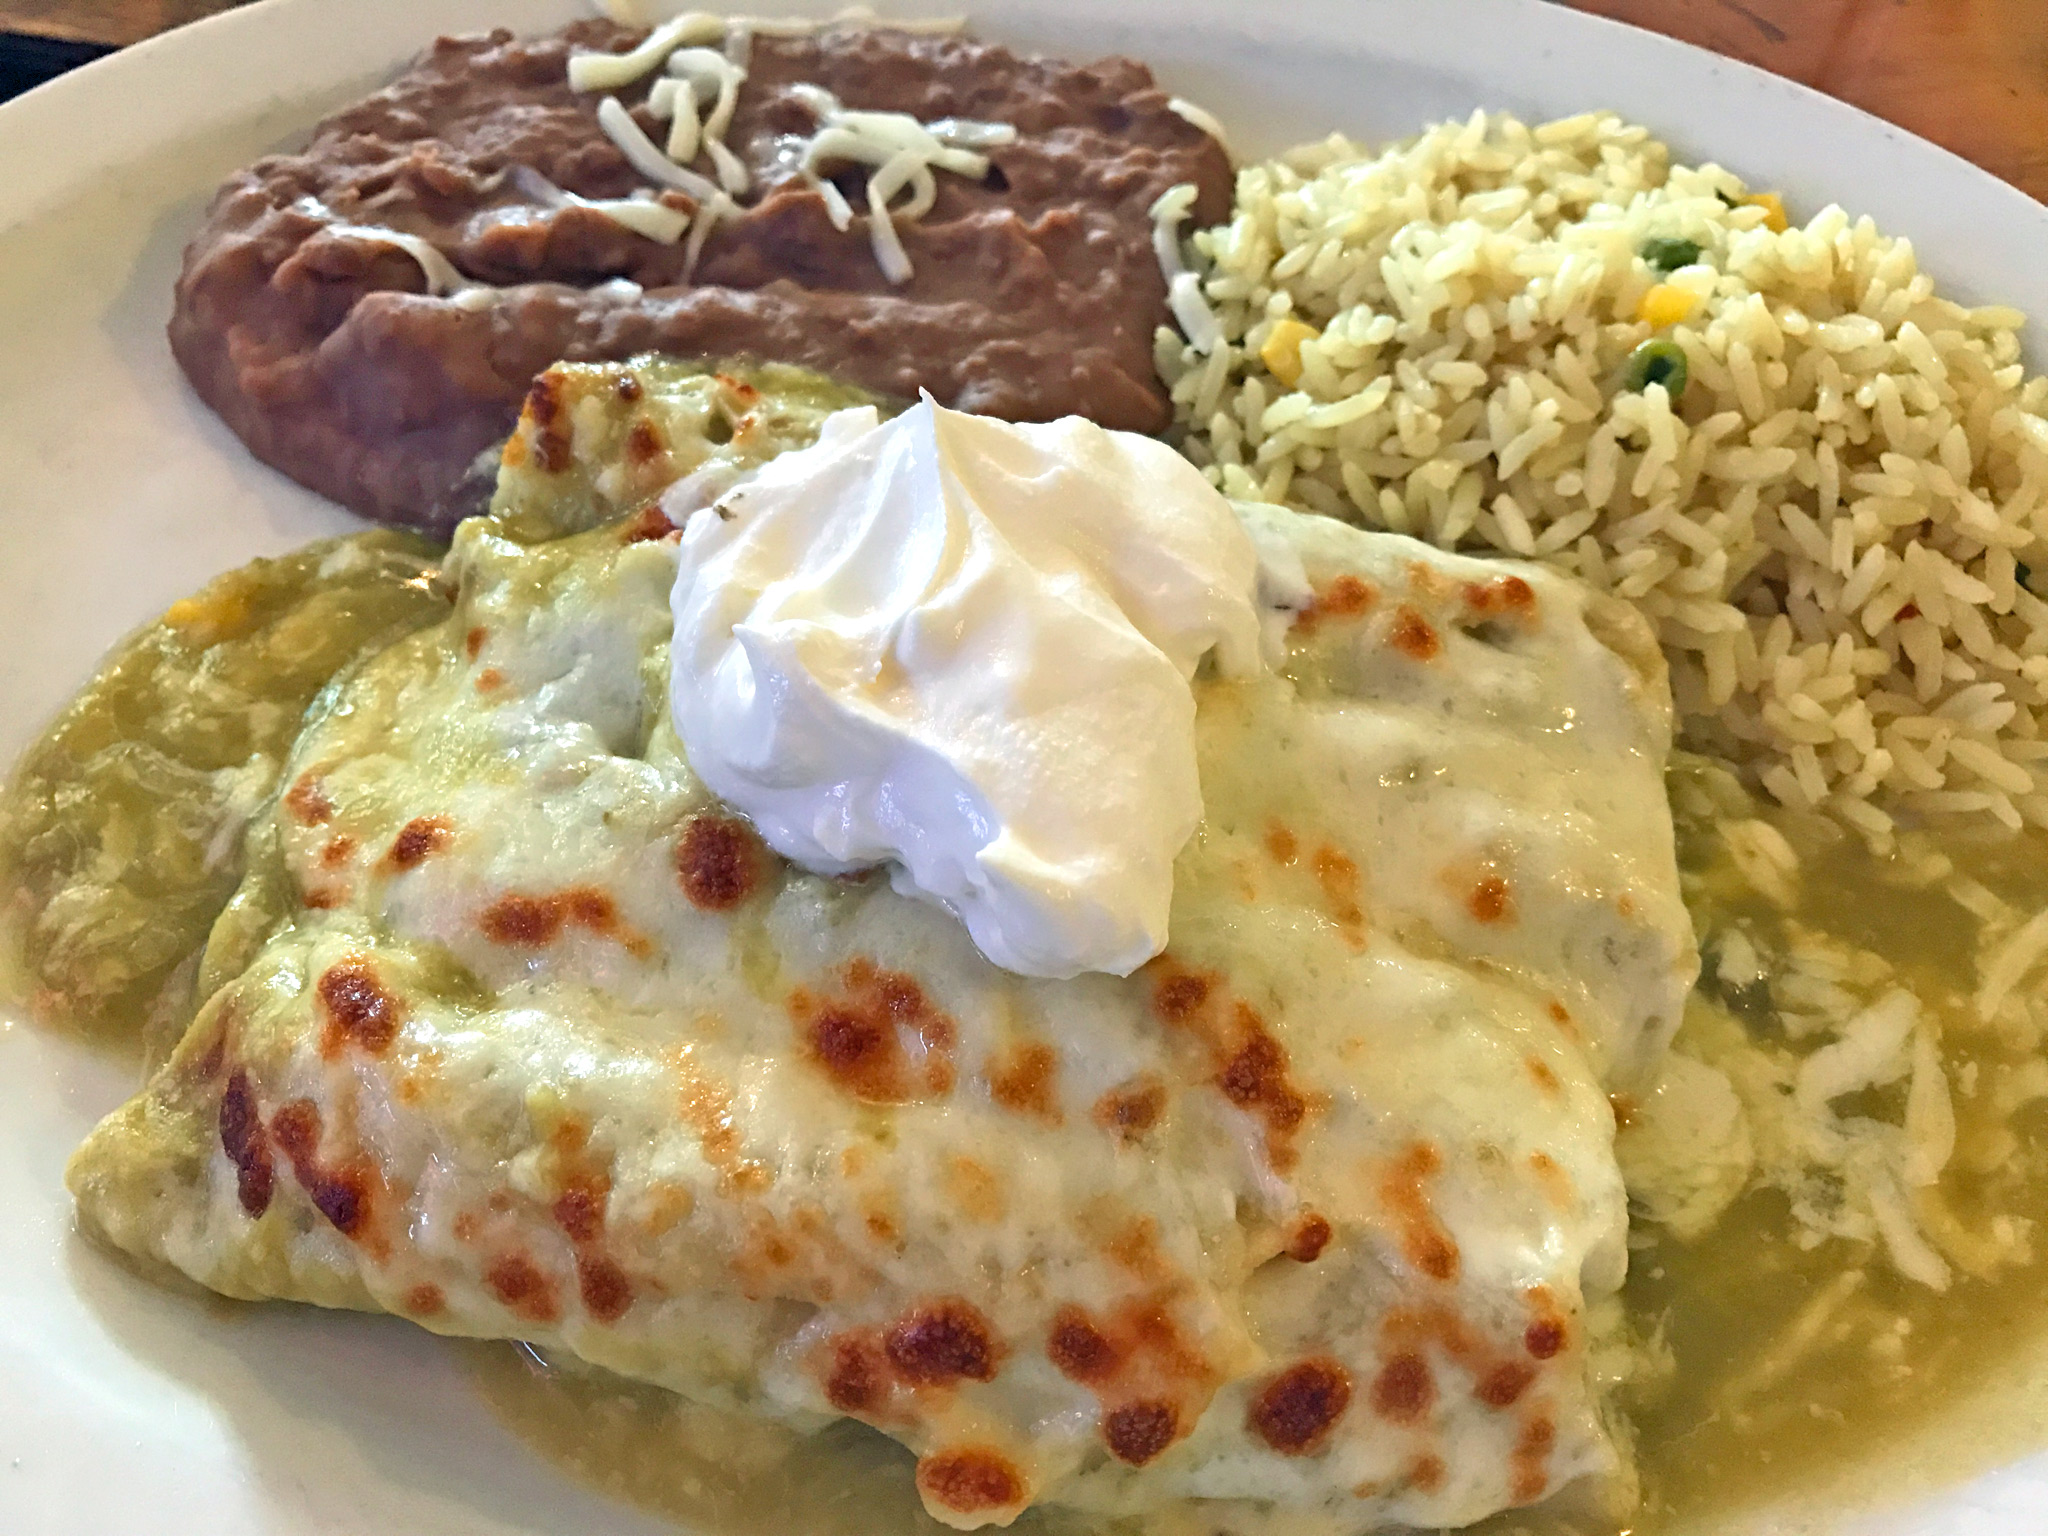 Enchilada de Pollo (Chicken) Filled with a Green Chile Tomatillo sauce